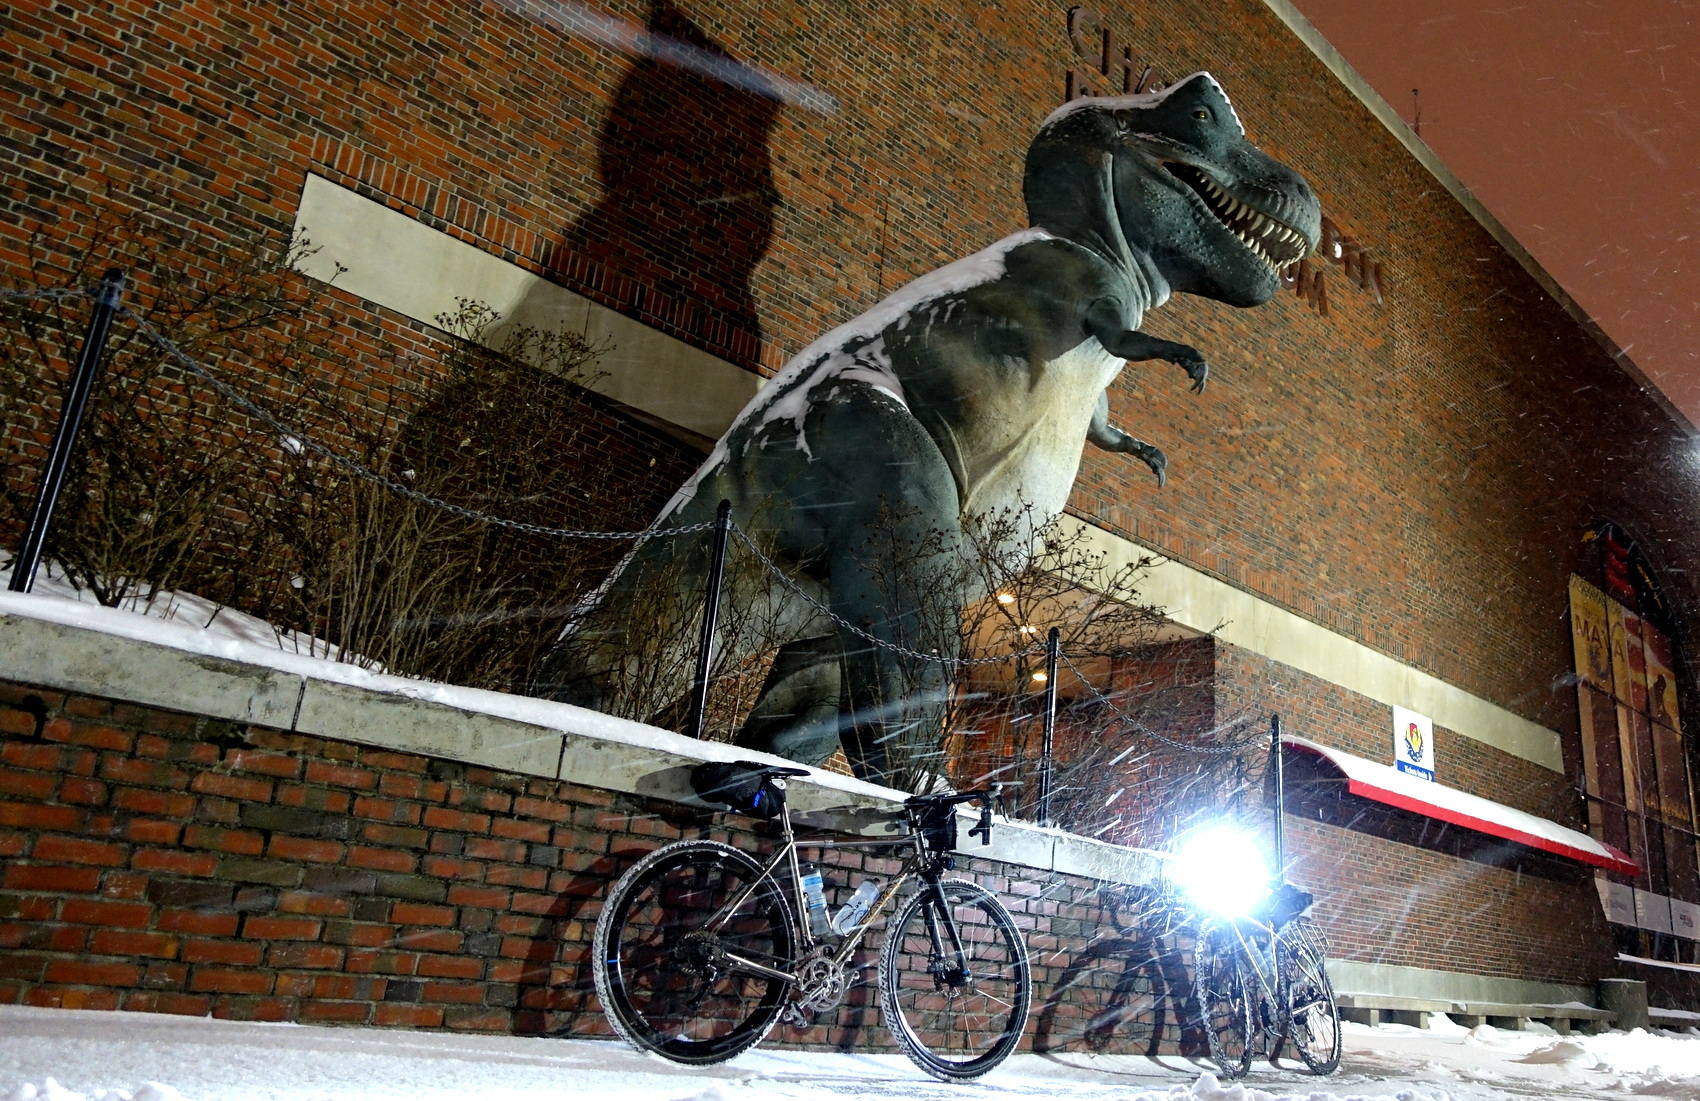 T-Rex in the snowstorm